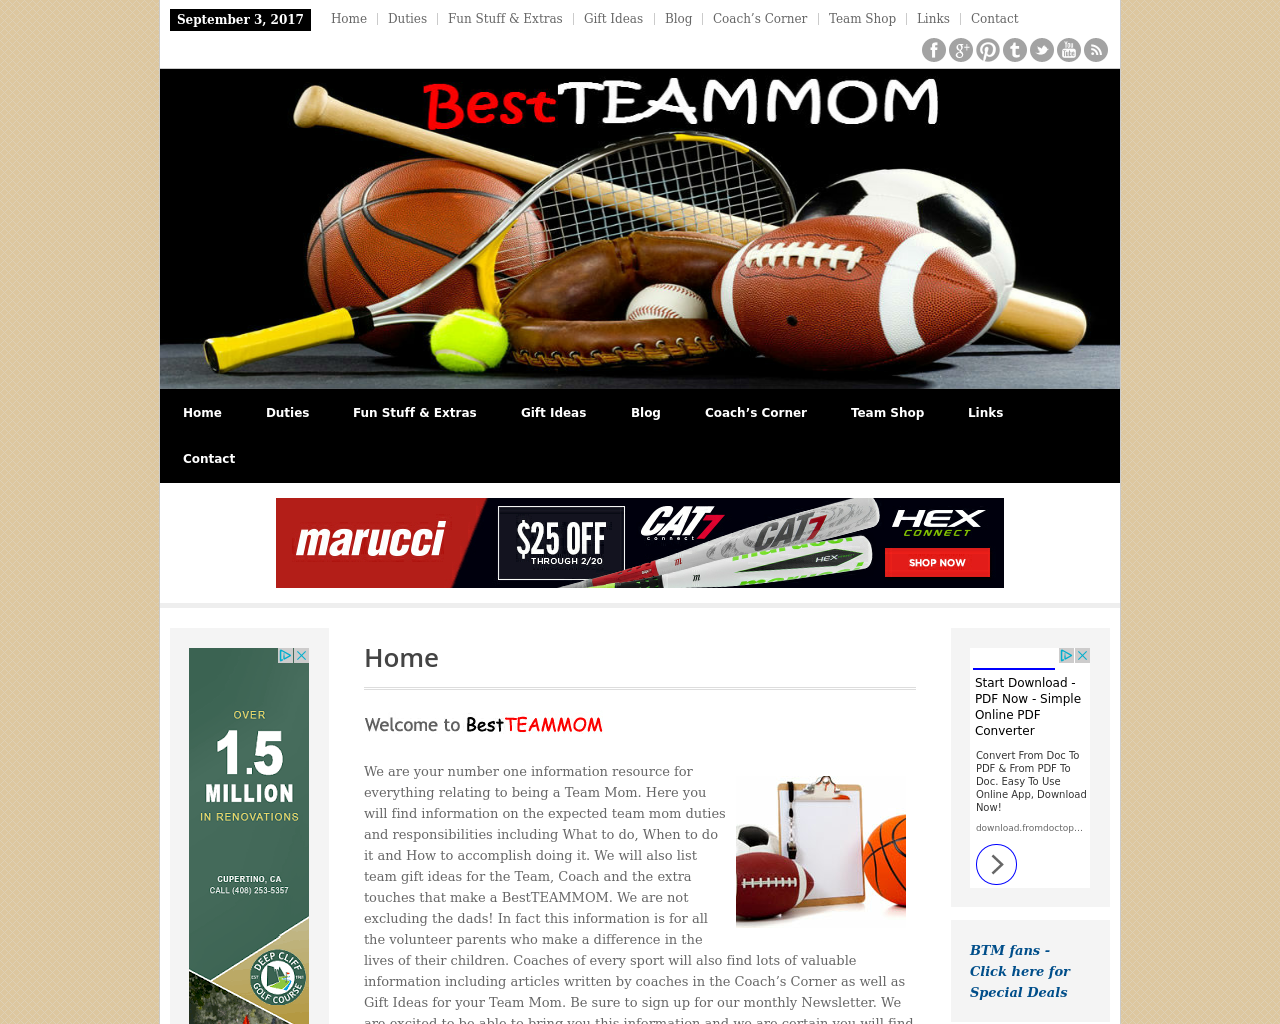 Best-Team-Mom-Advertising-Reviews-Pricing